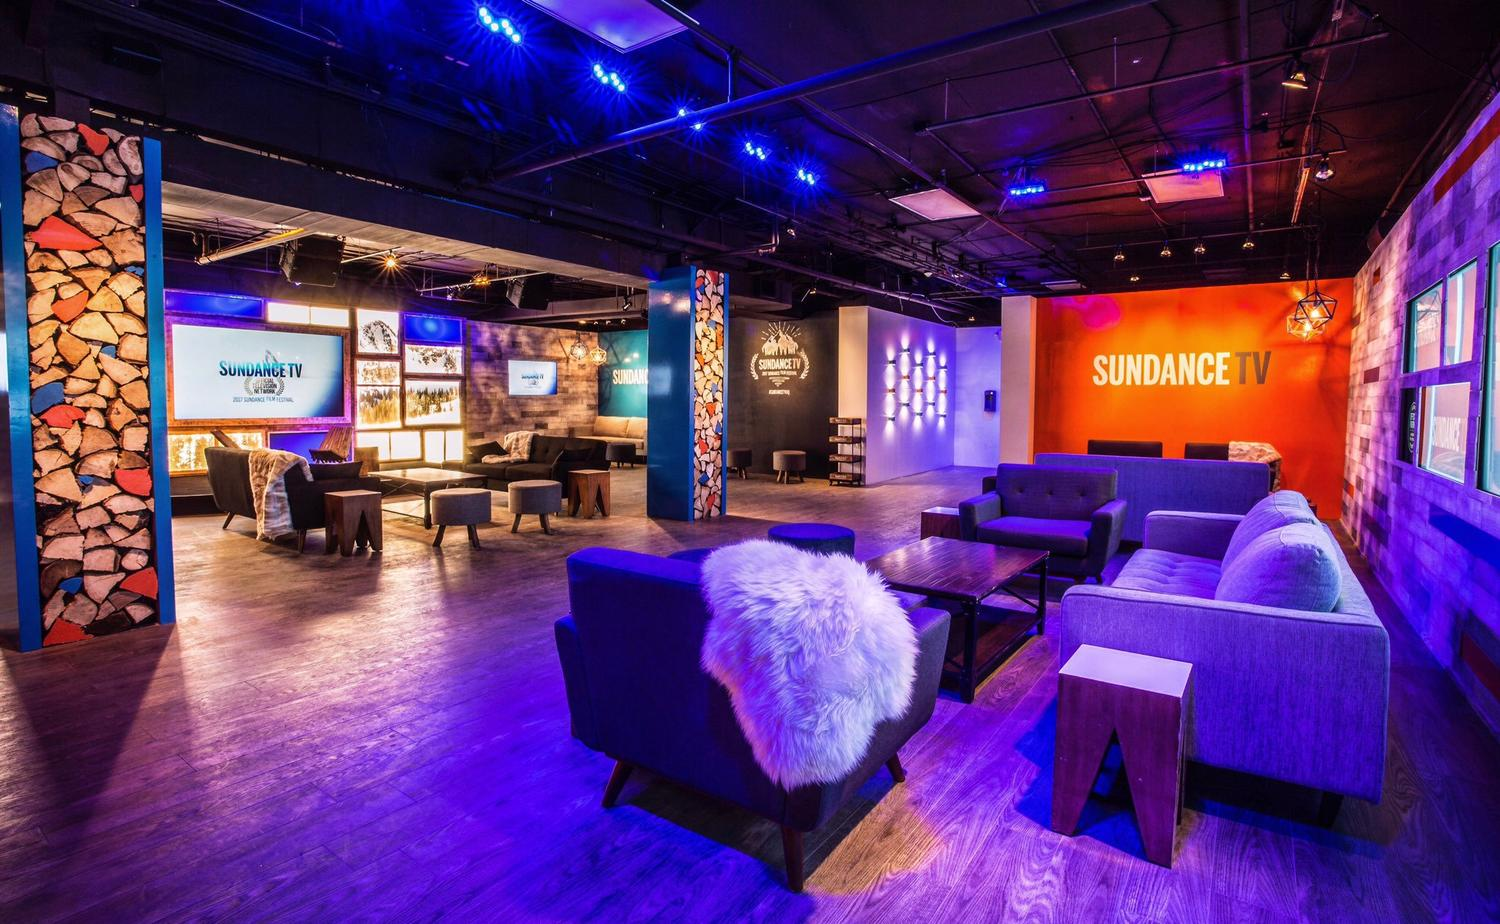 SUNDANCE TV HQ 2017